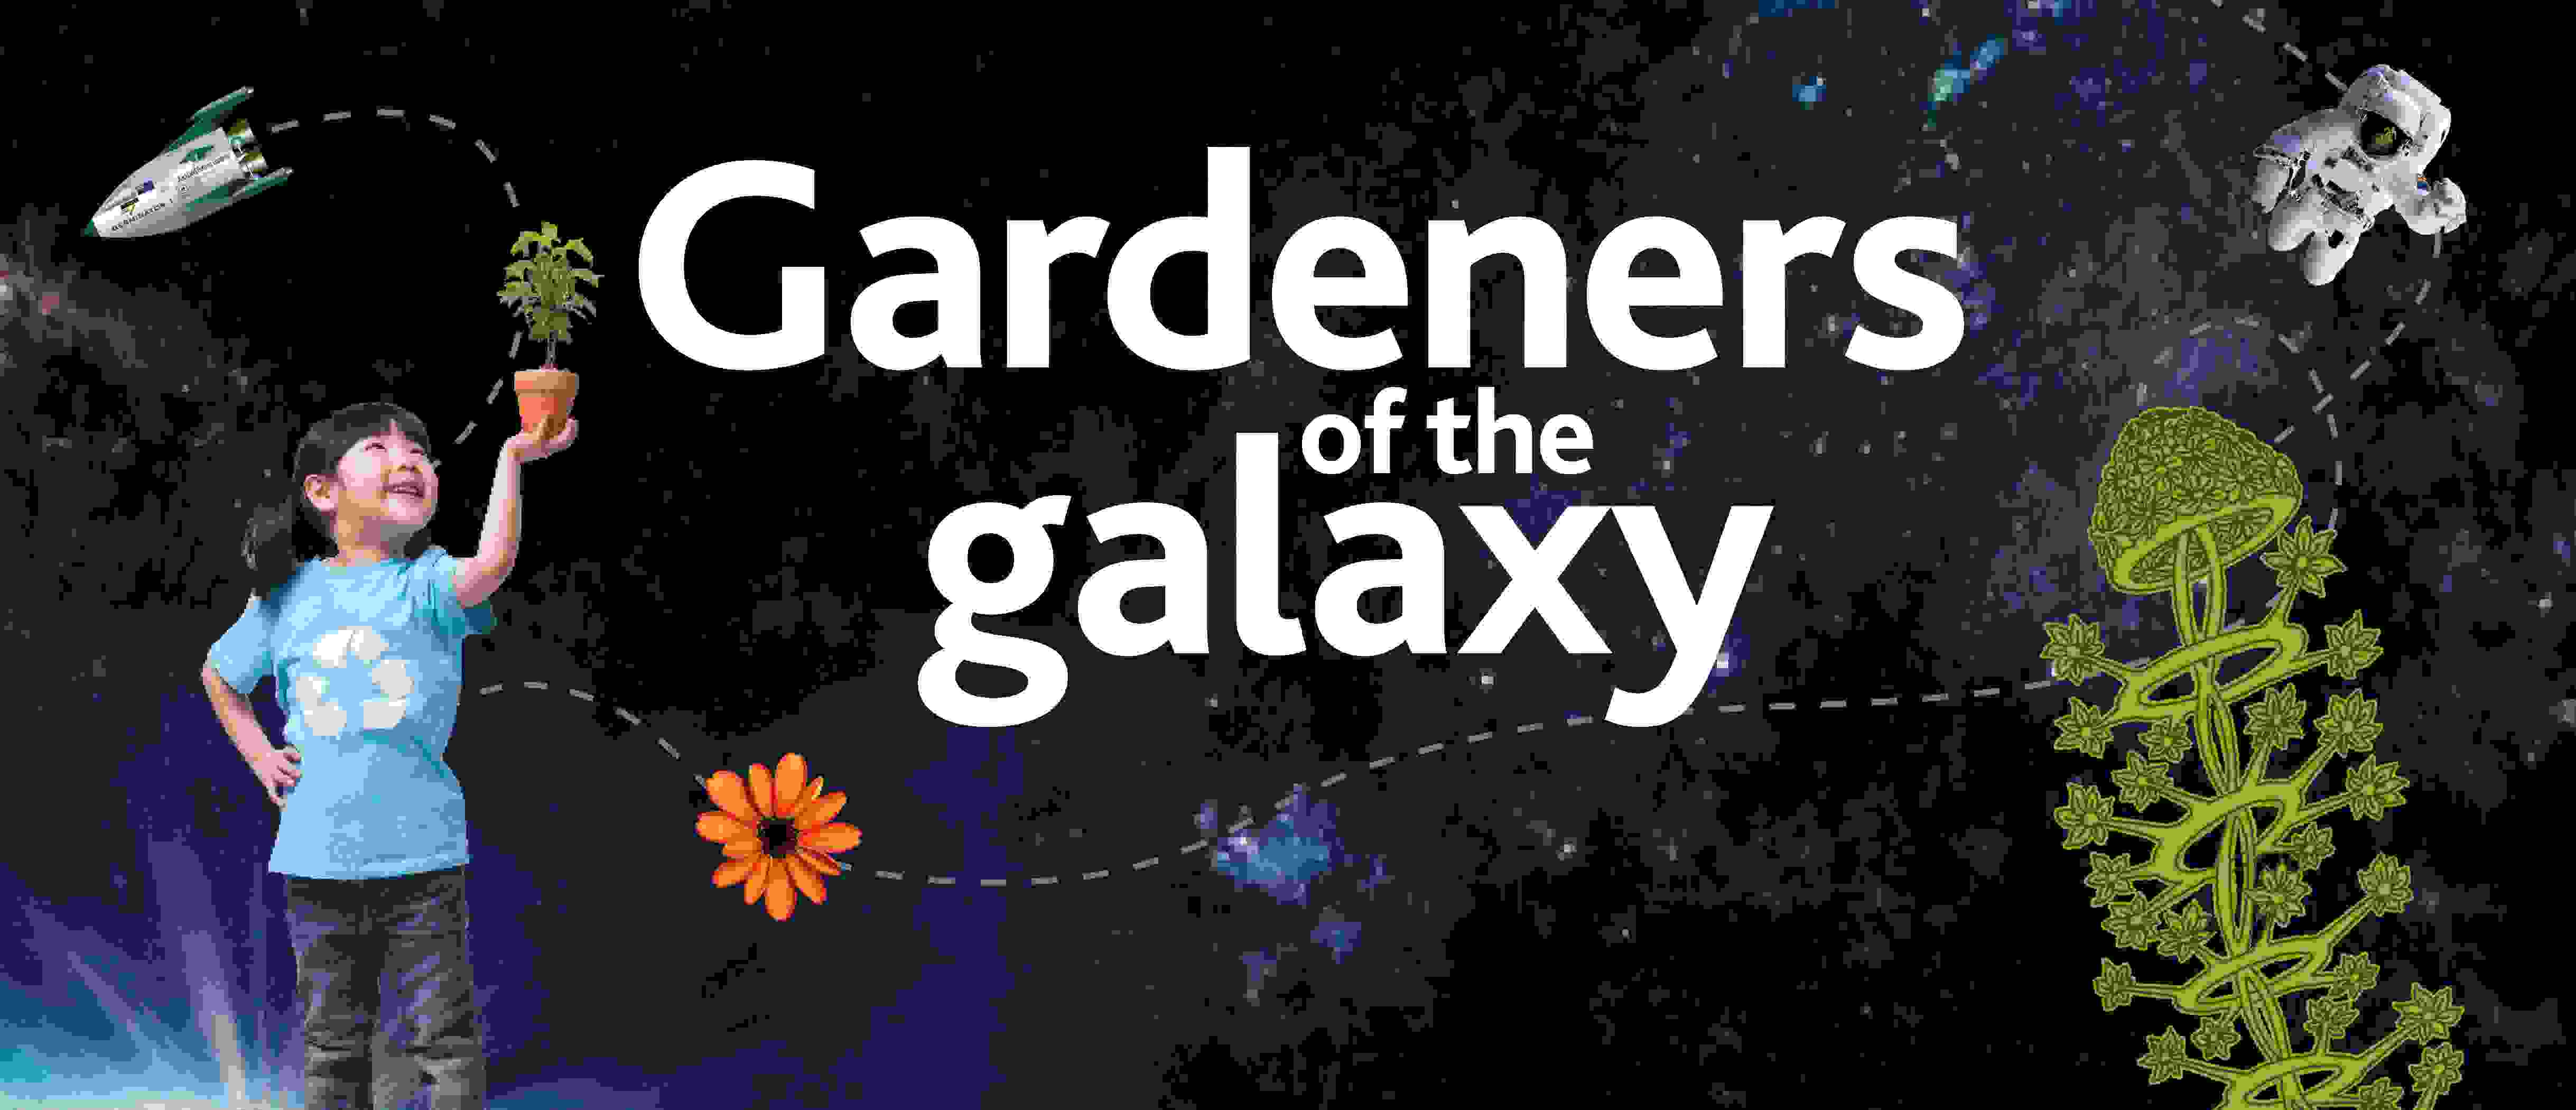 Gardeners of the galaxy image